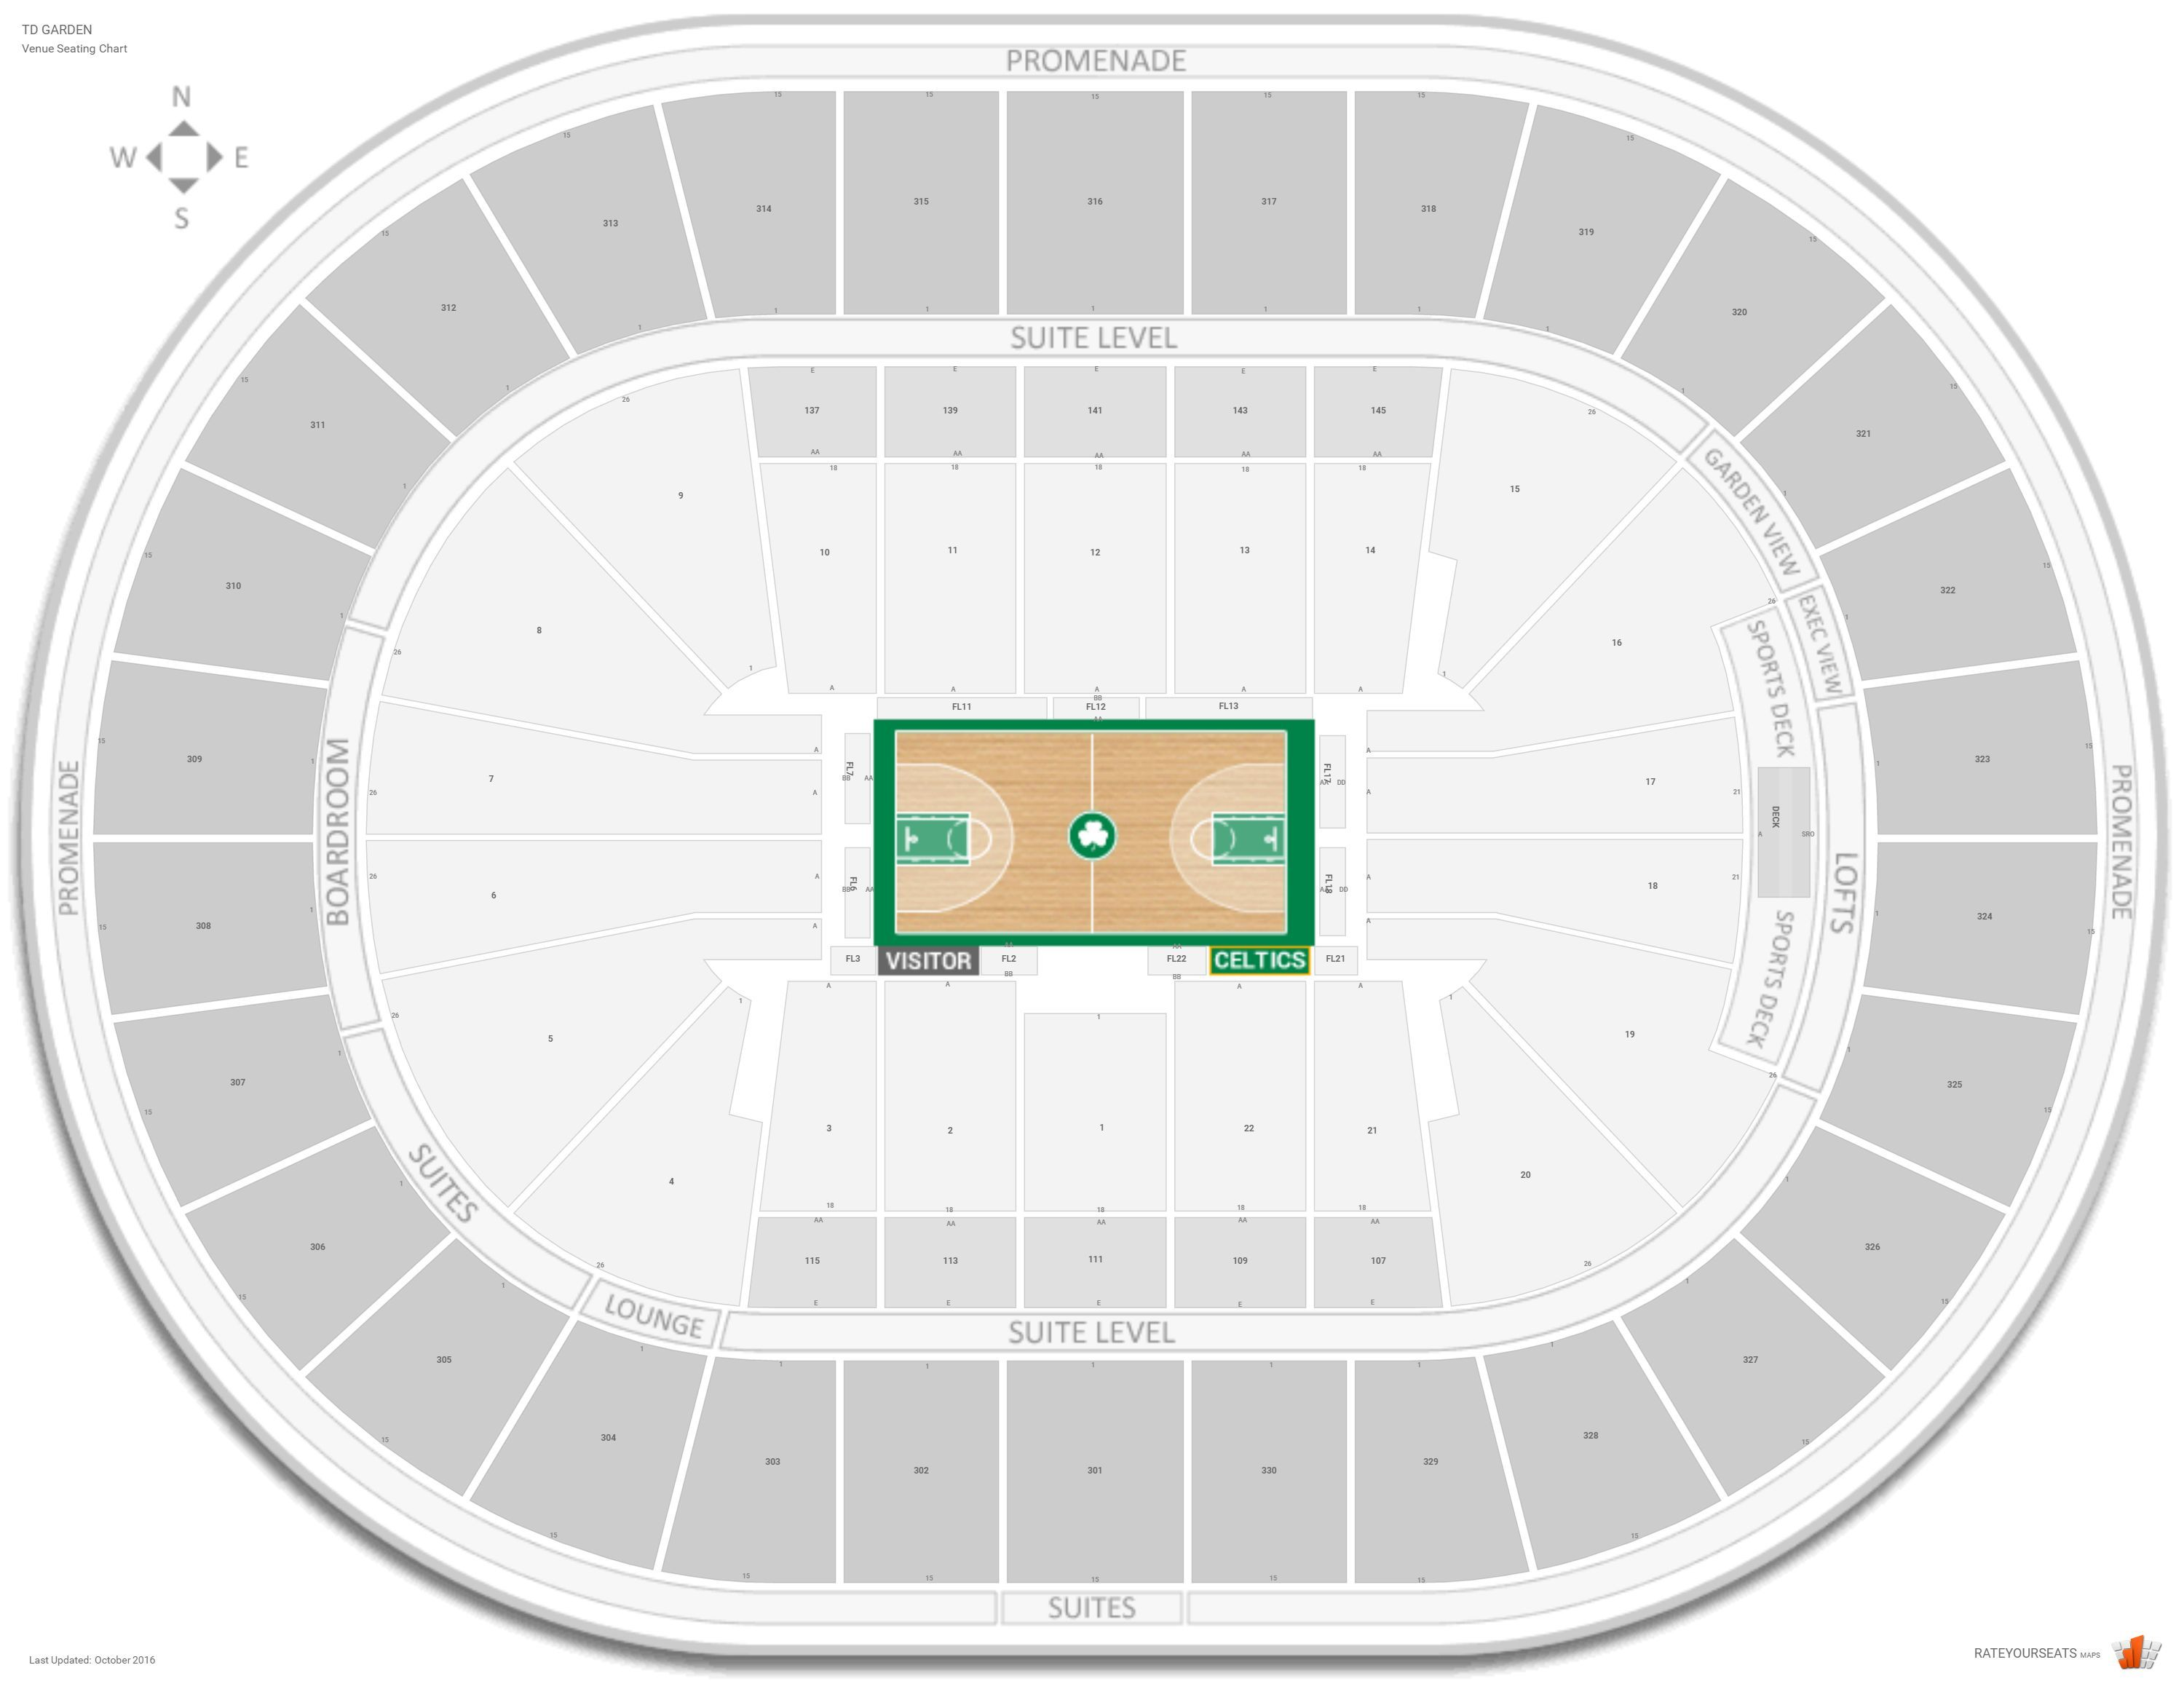 Td Garden Seating Chart With Rows In 2020 With Images Garden